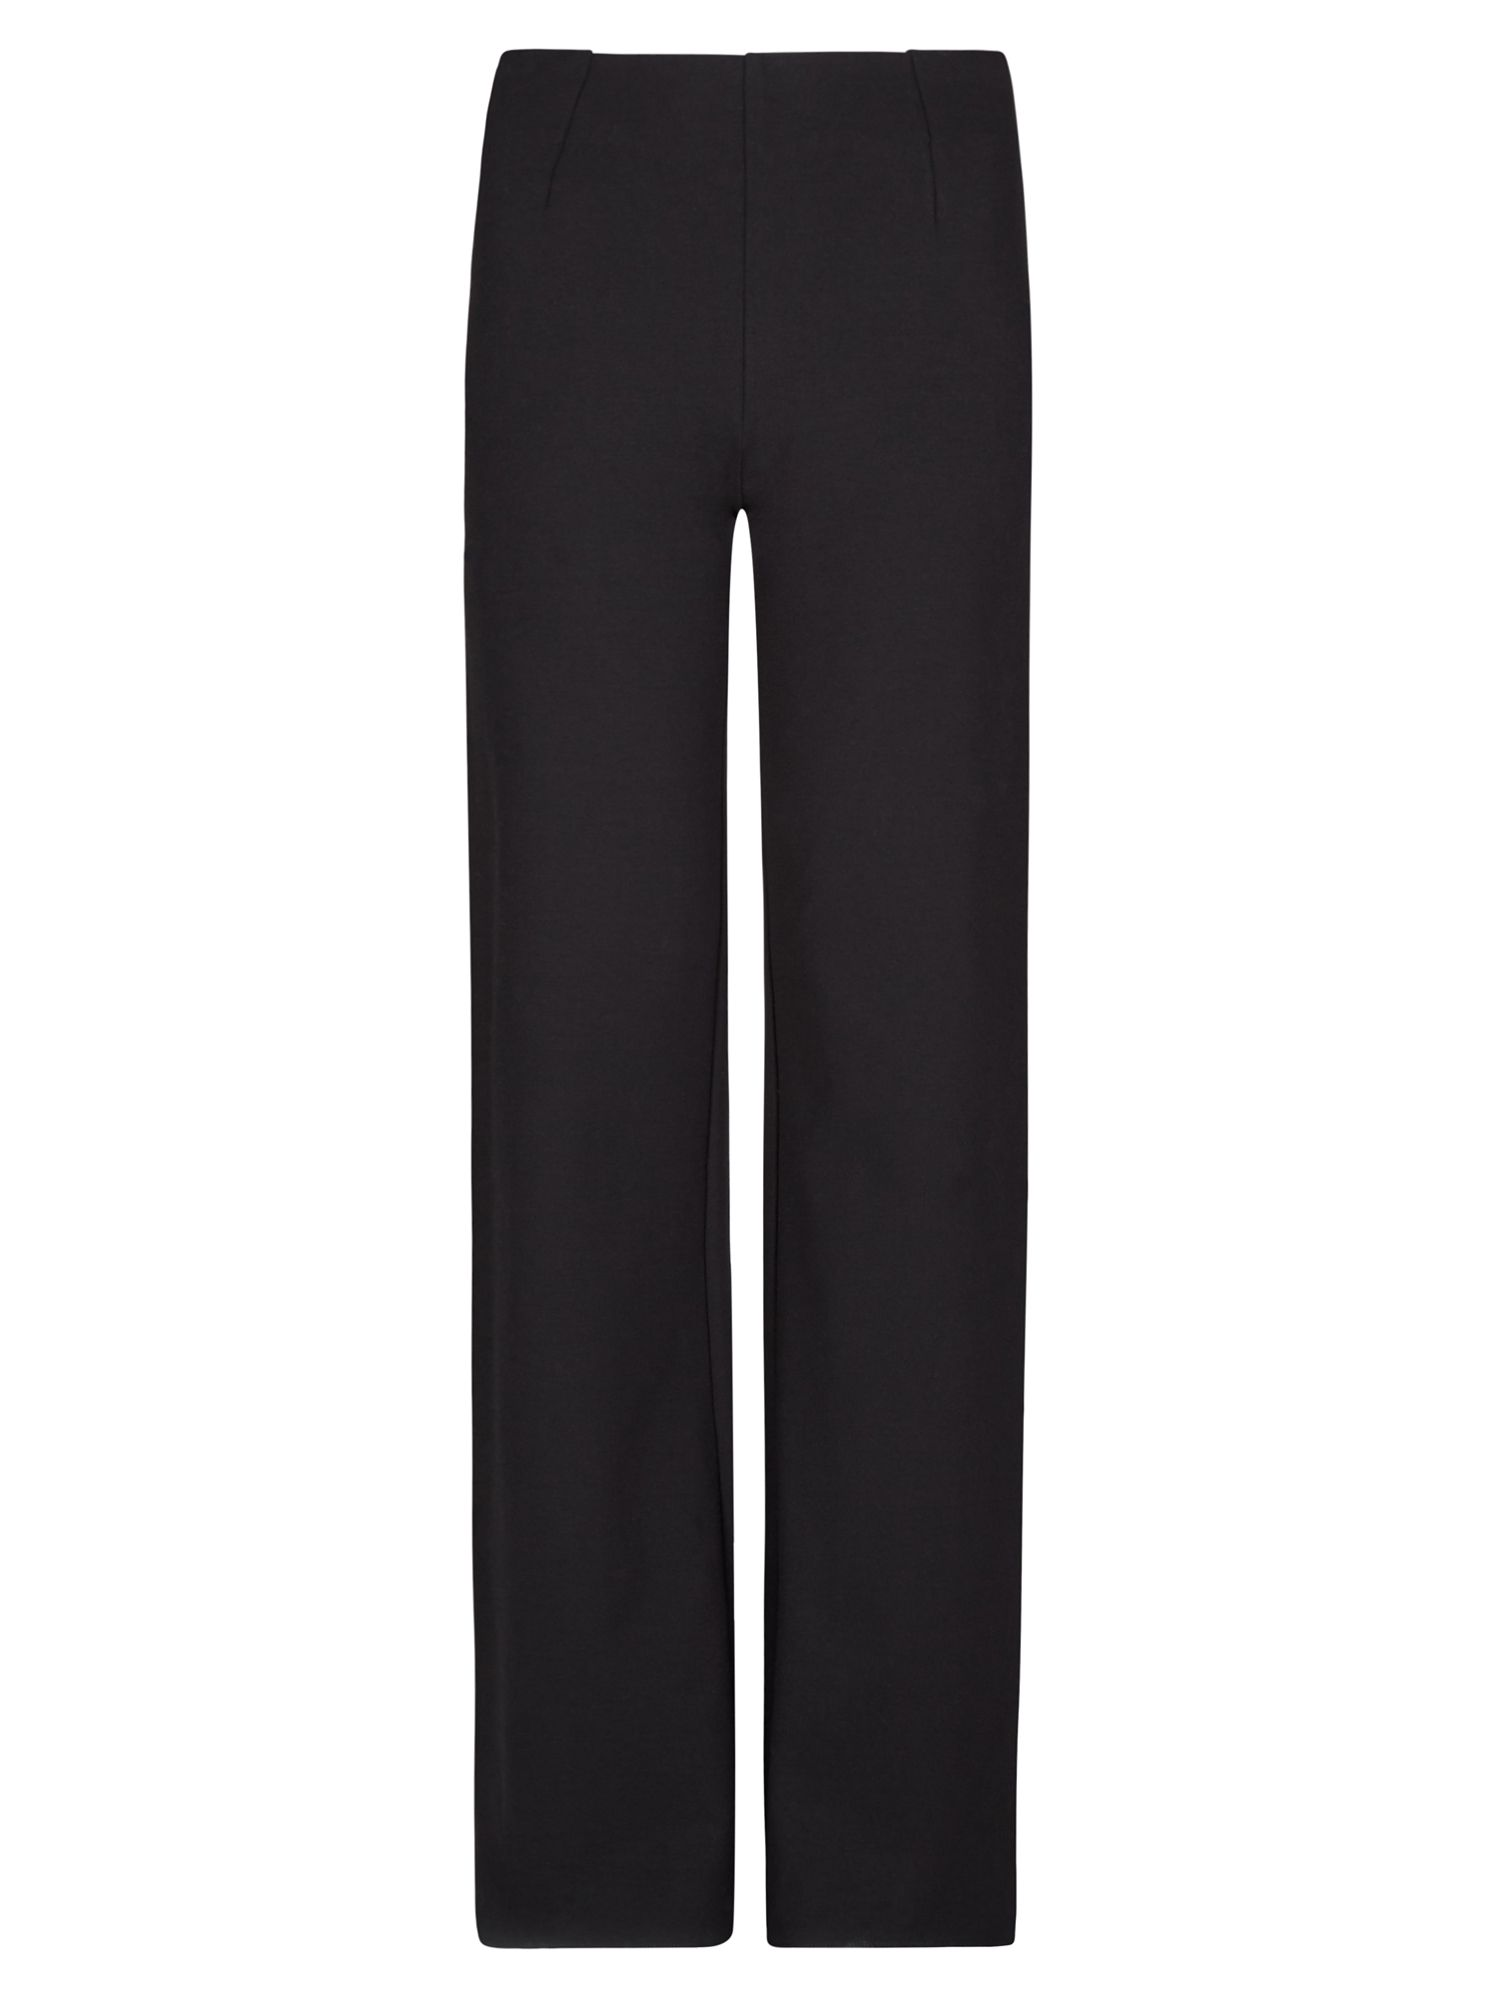 Winser London Miracle Trousers, Black